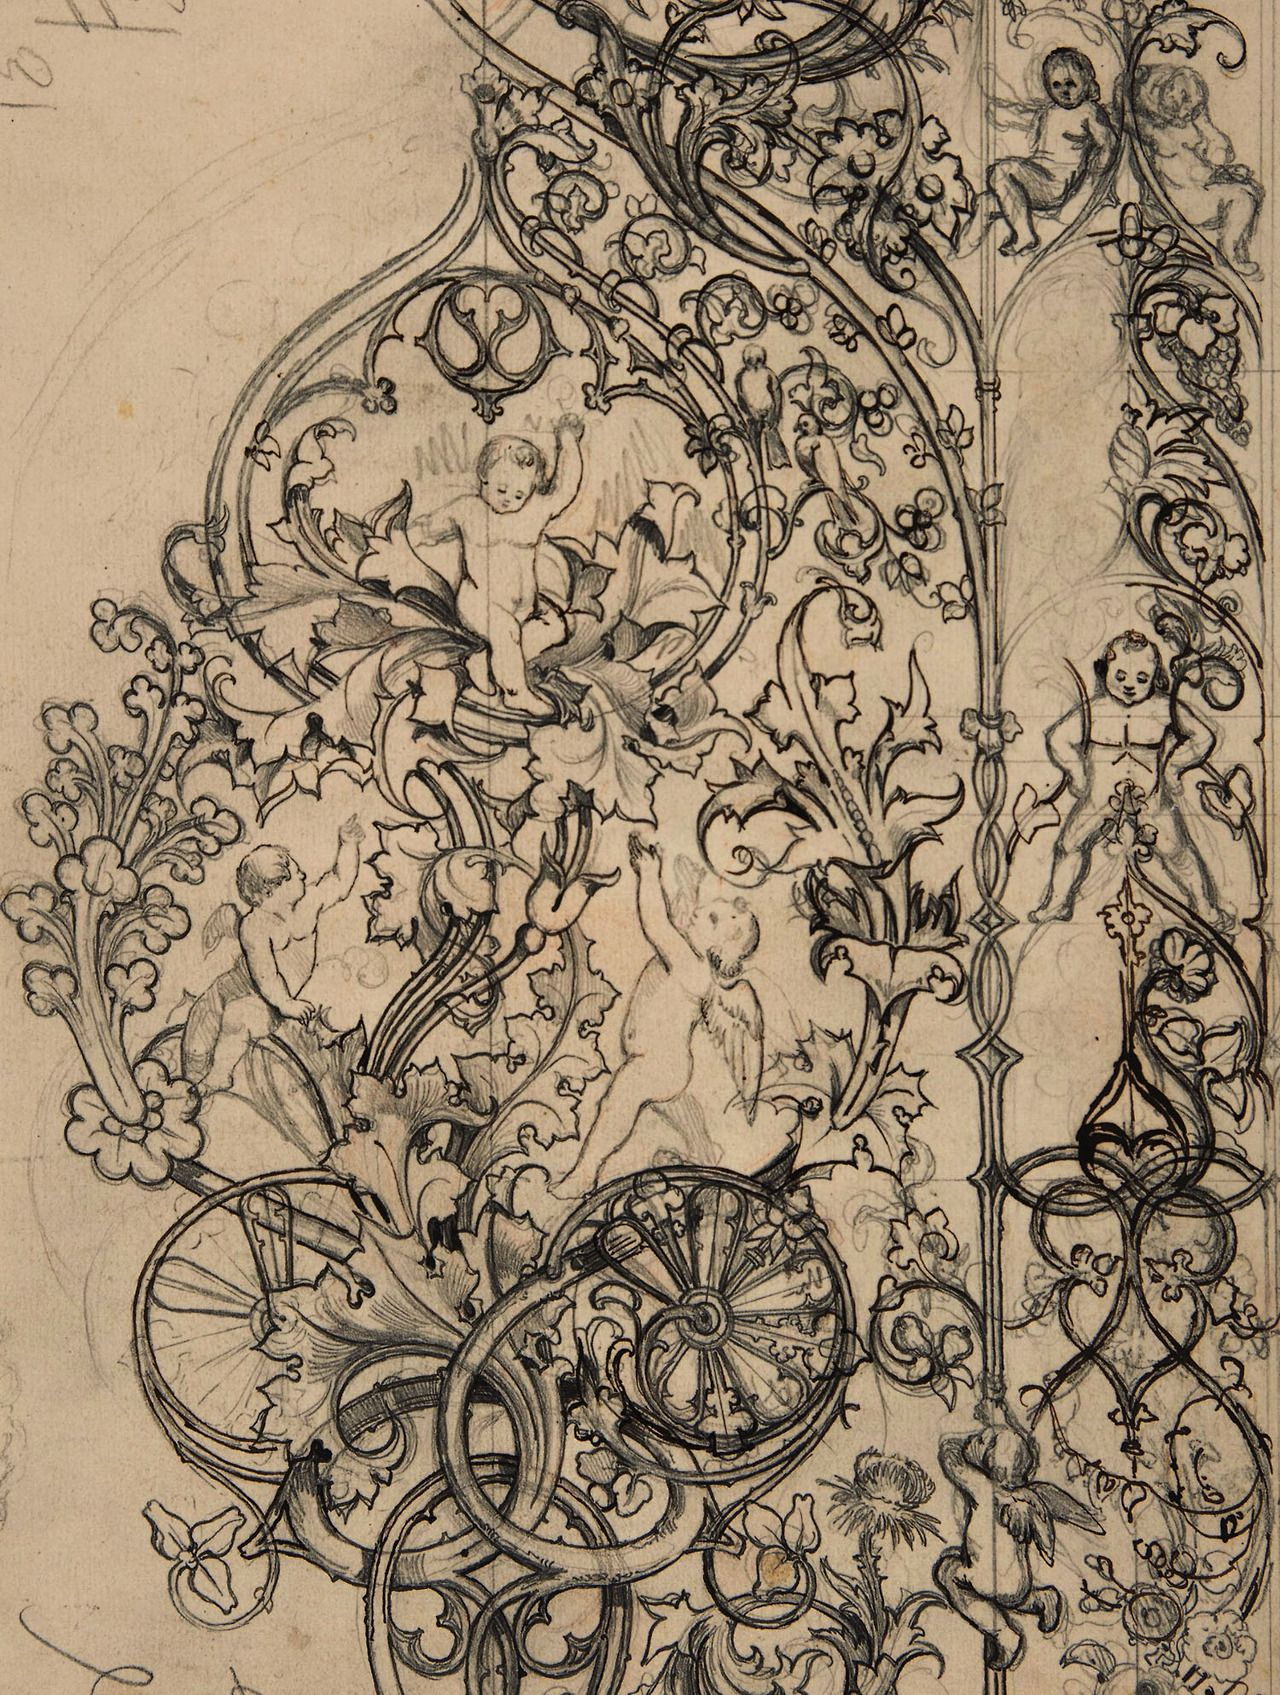 jaded-mandarin: Gothic Ornament with Putti and Acanthus Leaves ...